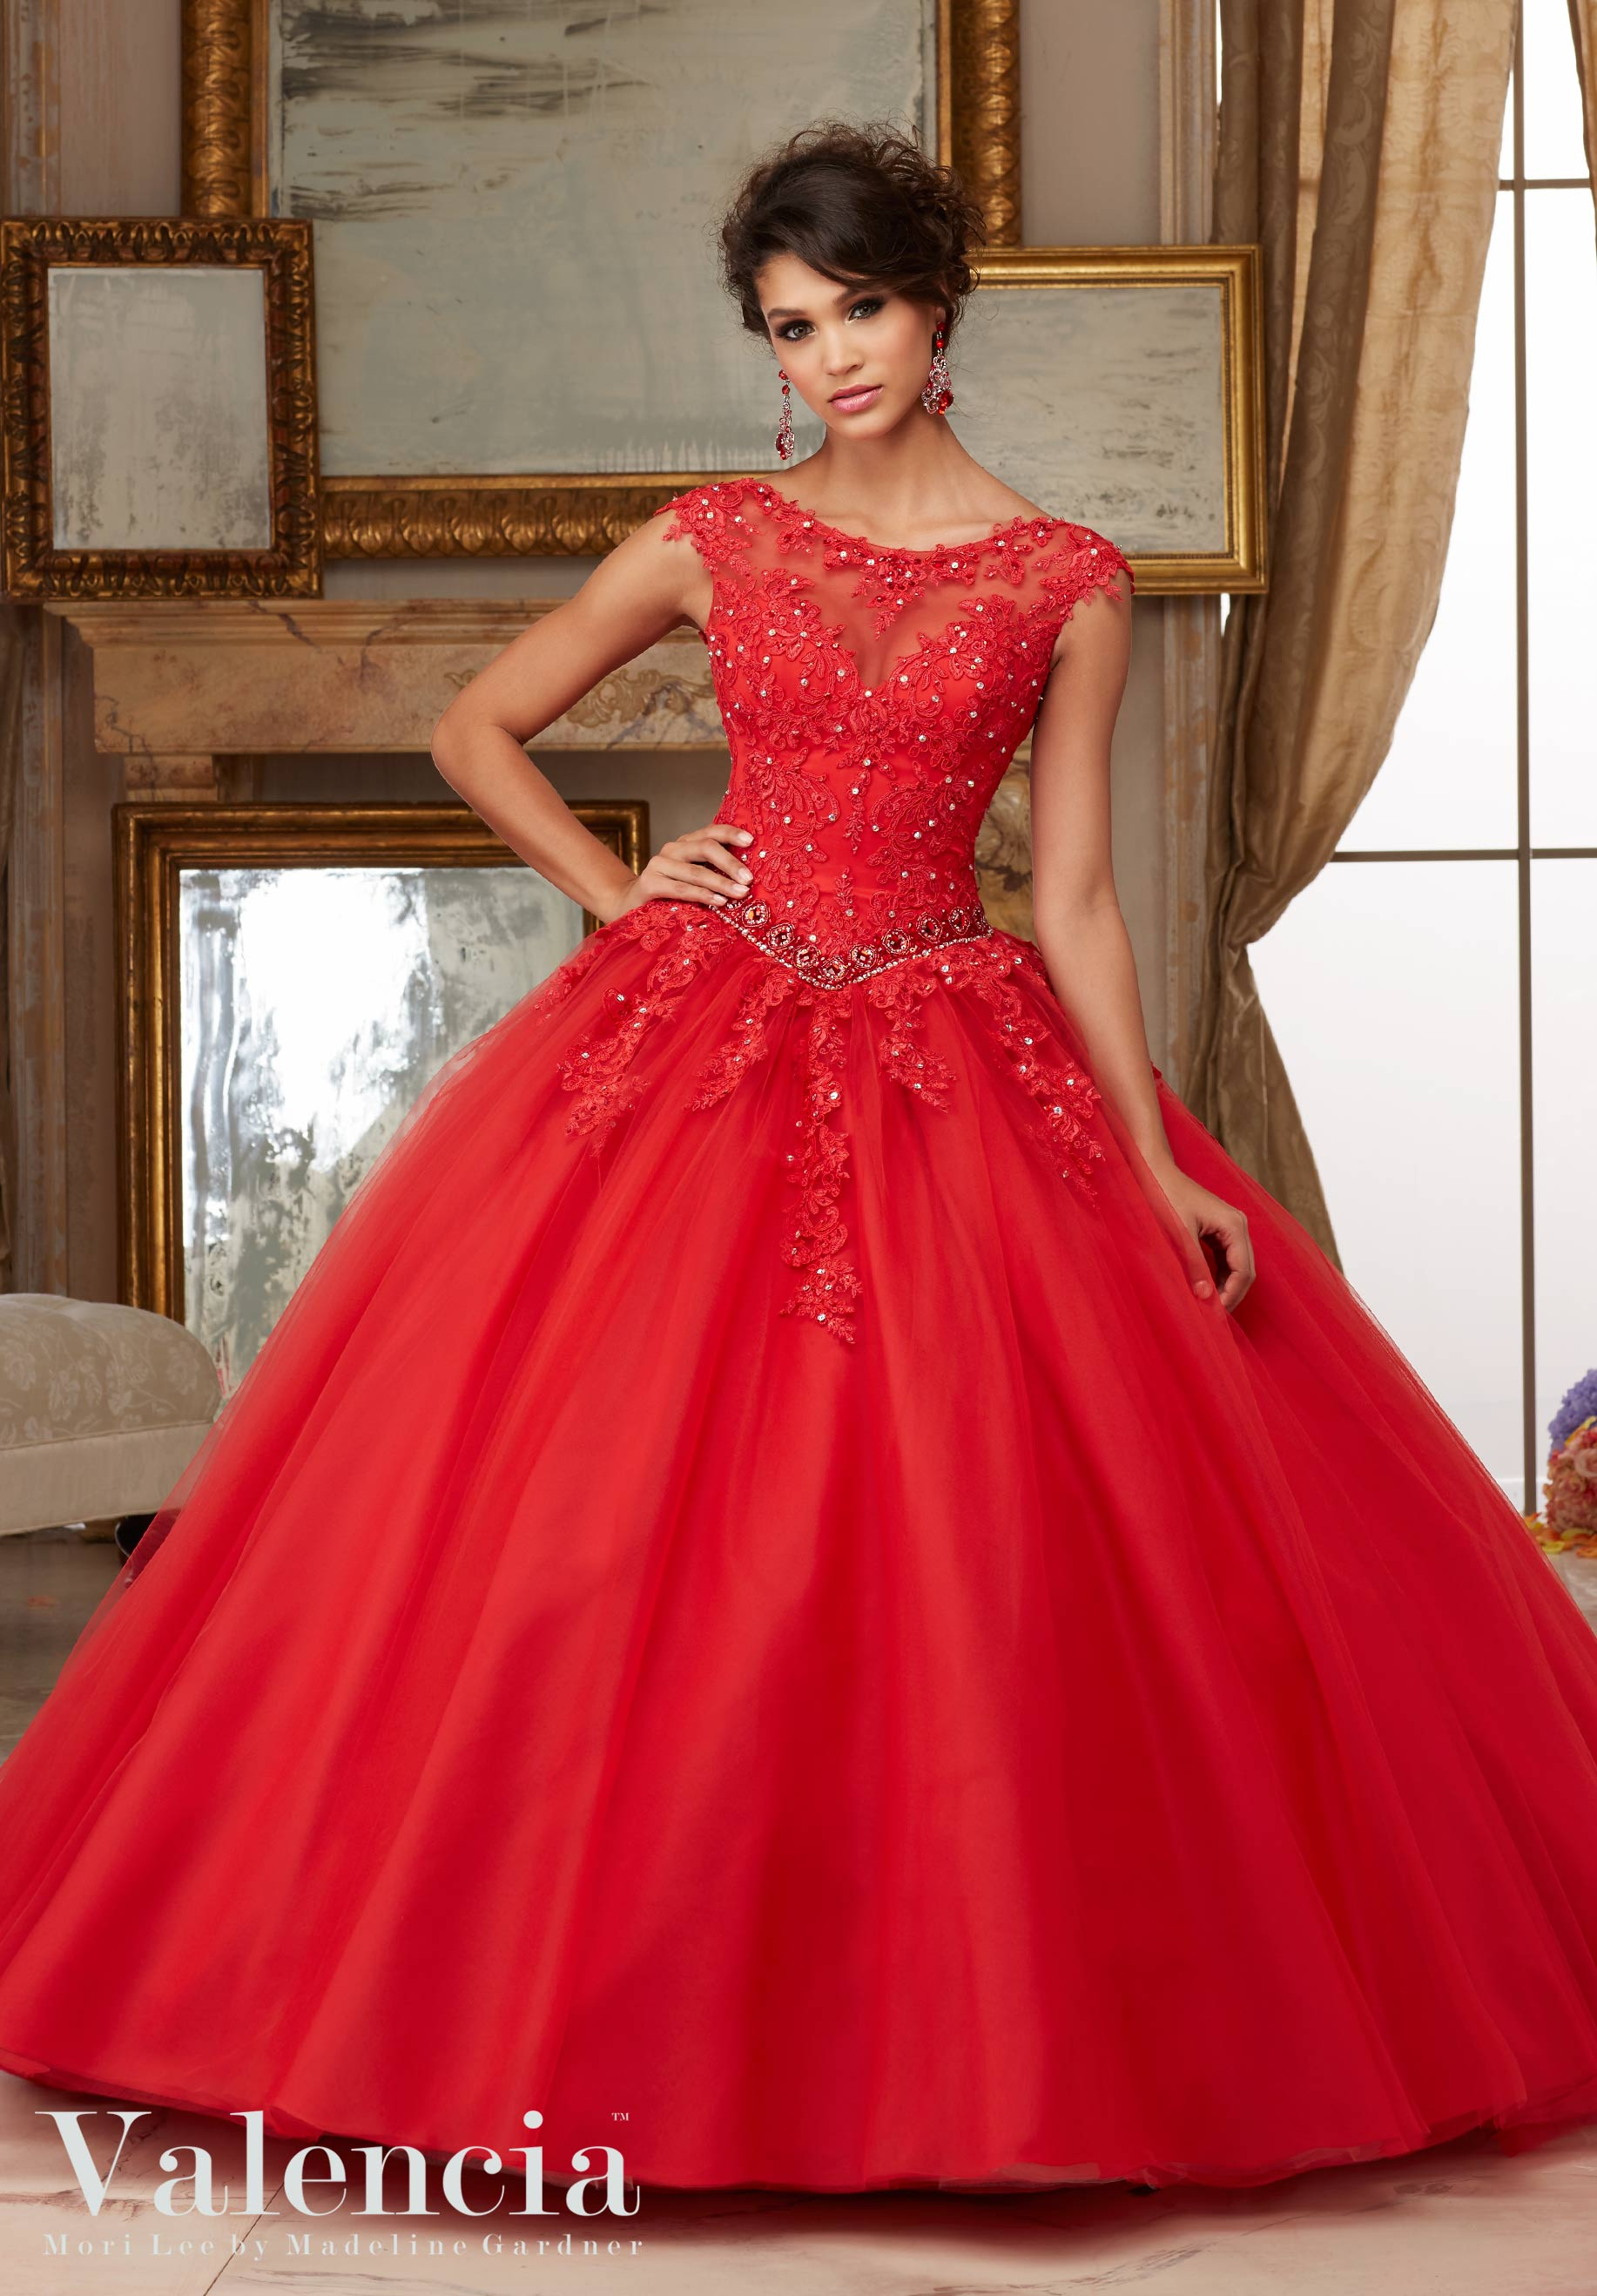 60006 Quinceanera Dresses, Valencia Collection - Dresses by Russo Boston